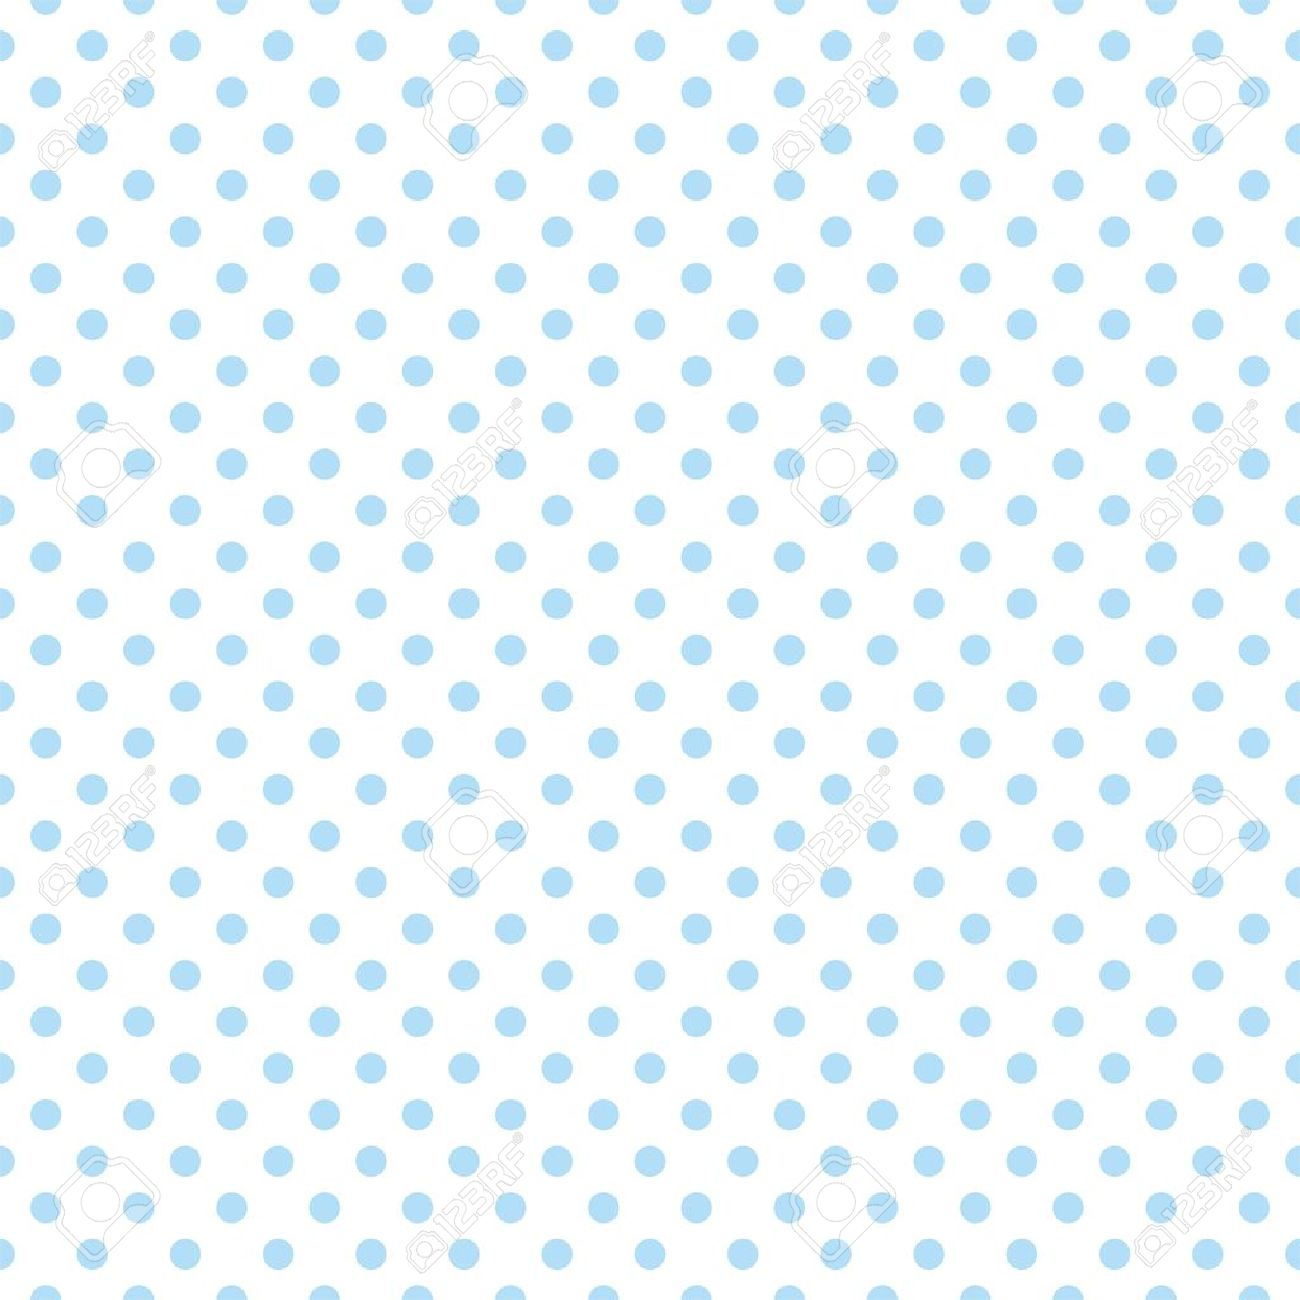 Seamless Vector Pattern With Cute Pastel Baby Blue Polka Dots